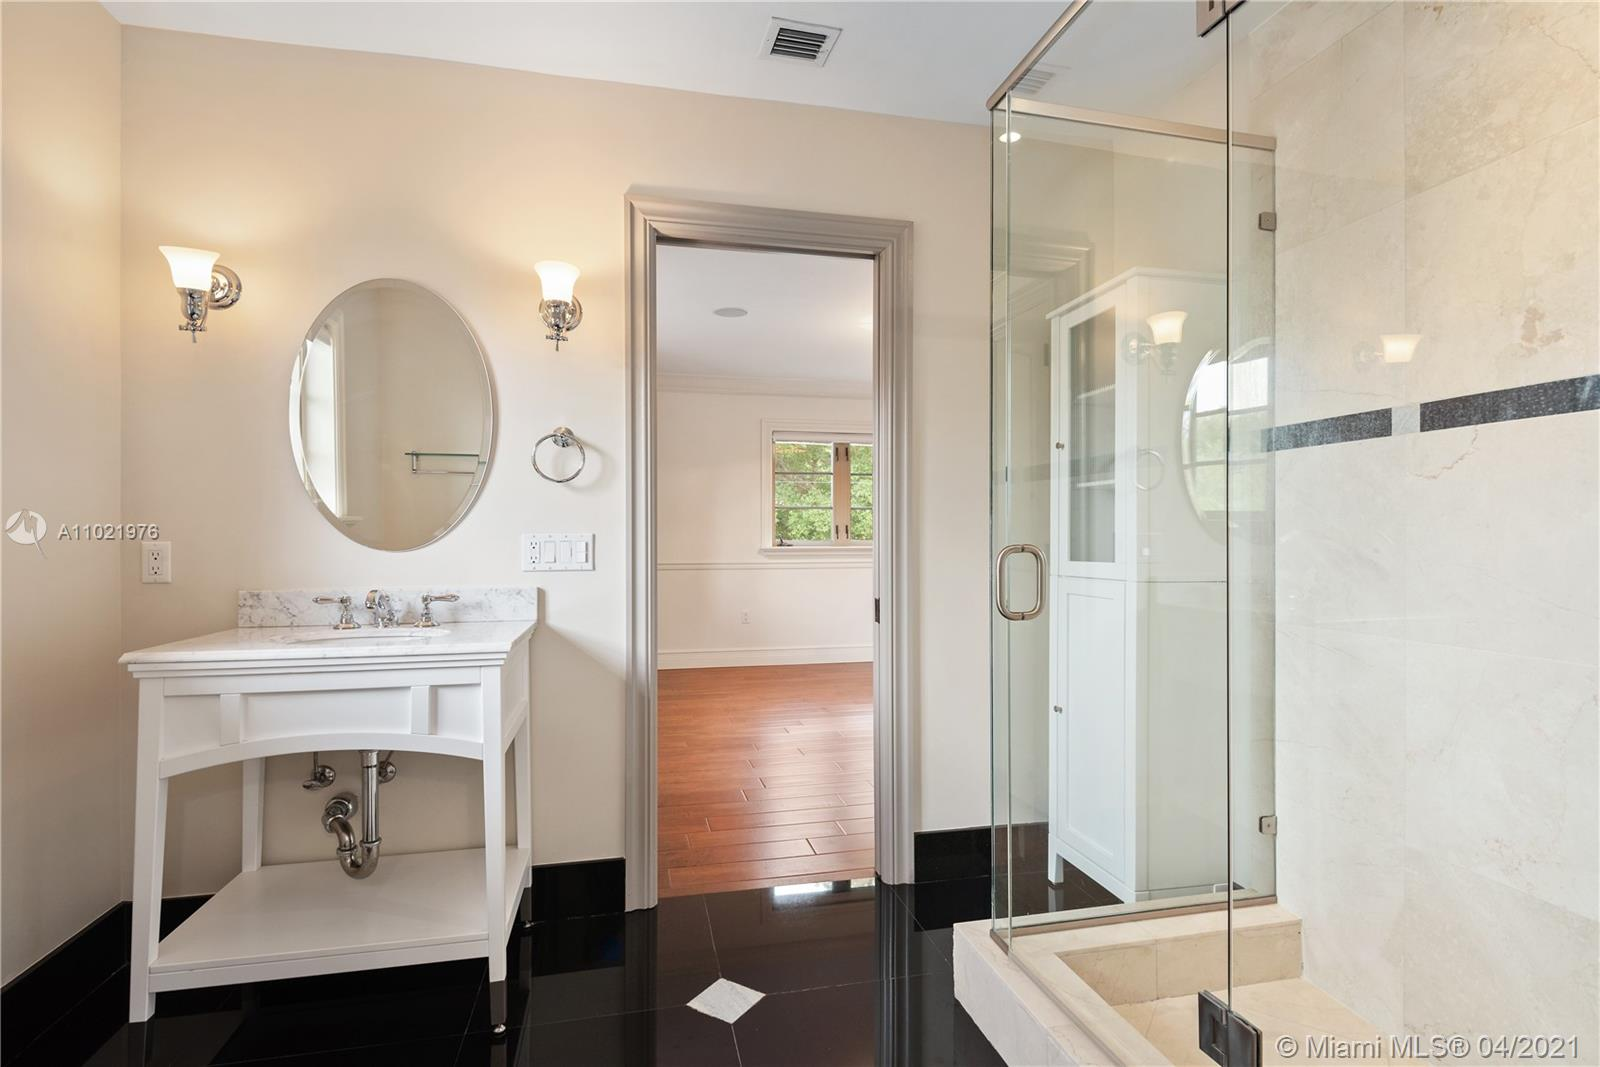 Jack and Jill Bathroom adjoining two bedrooms.